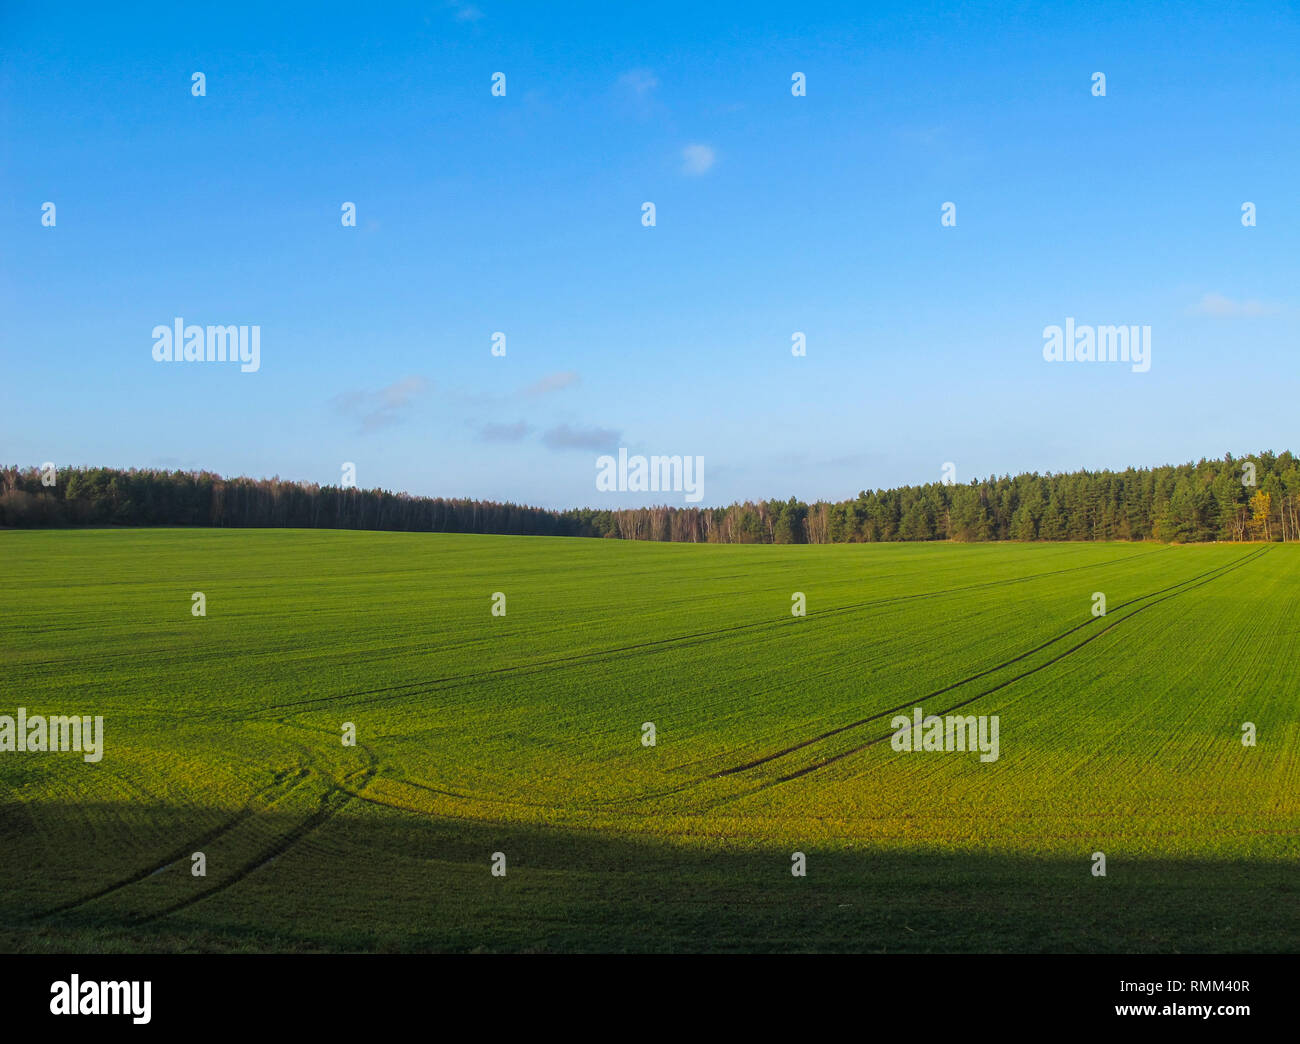 Wonderful green field and forest in the countryside on a sunny day with blue sky - Stock Image